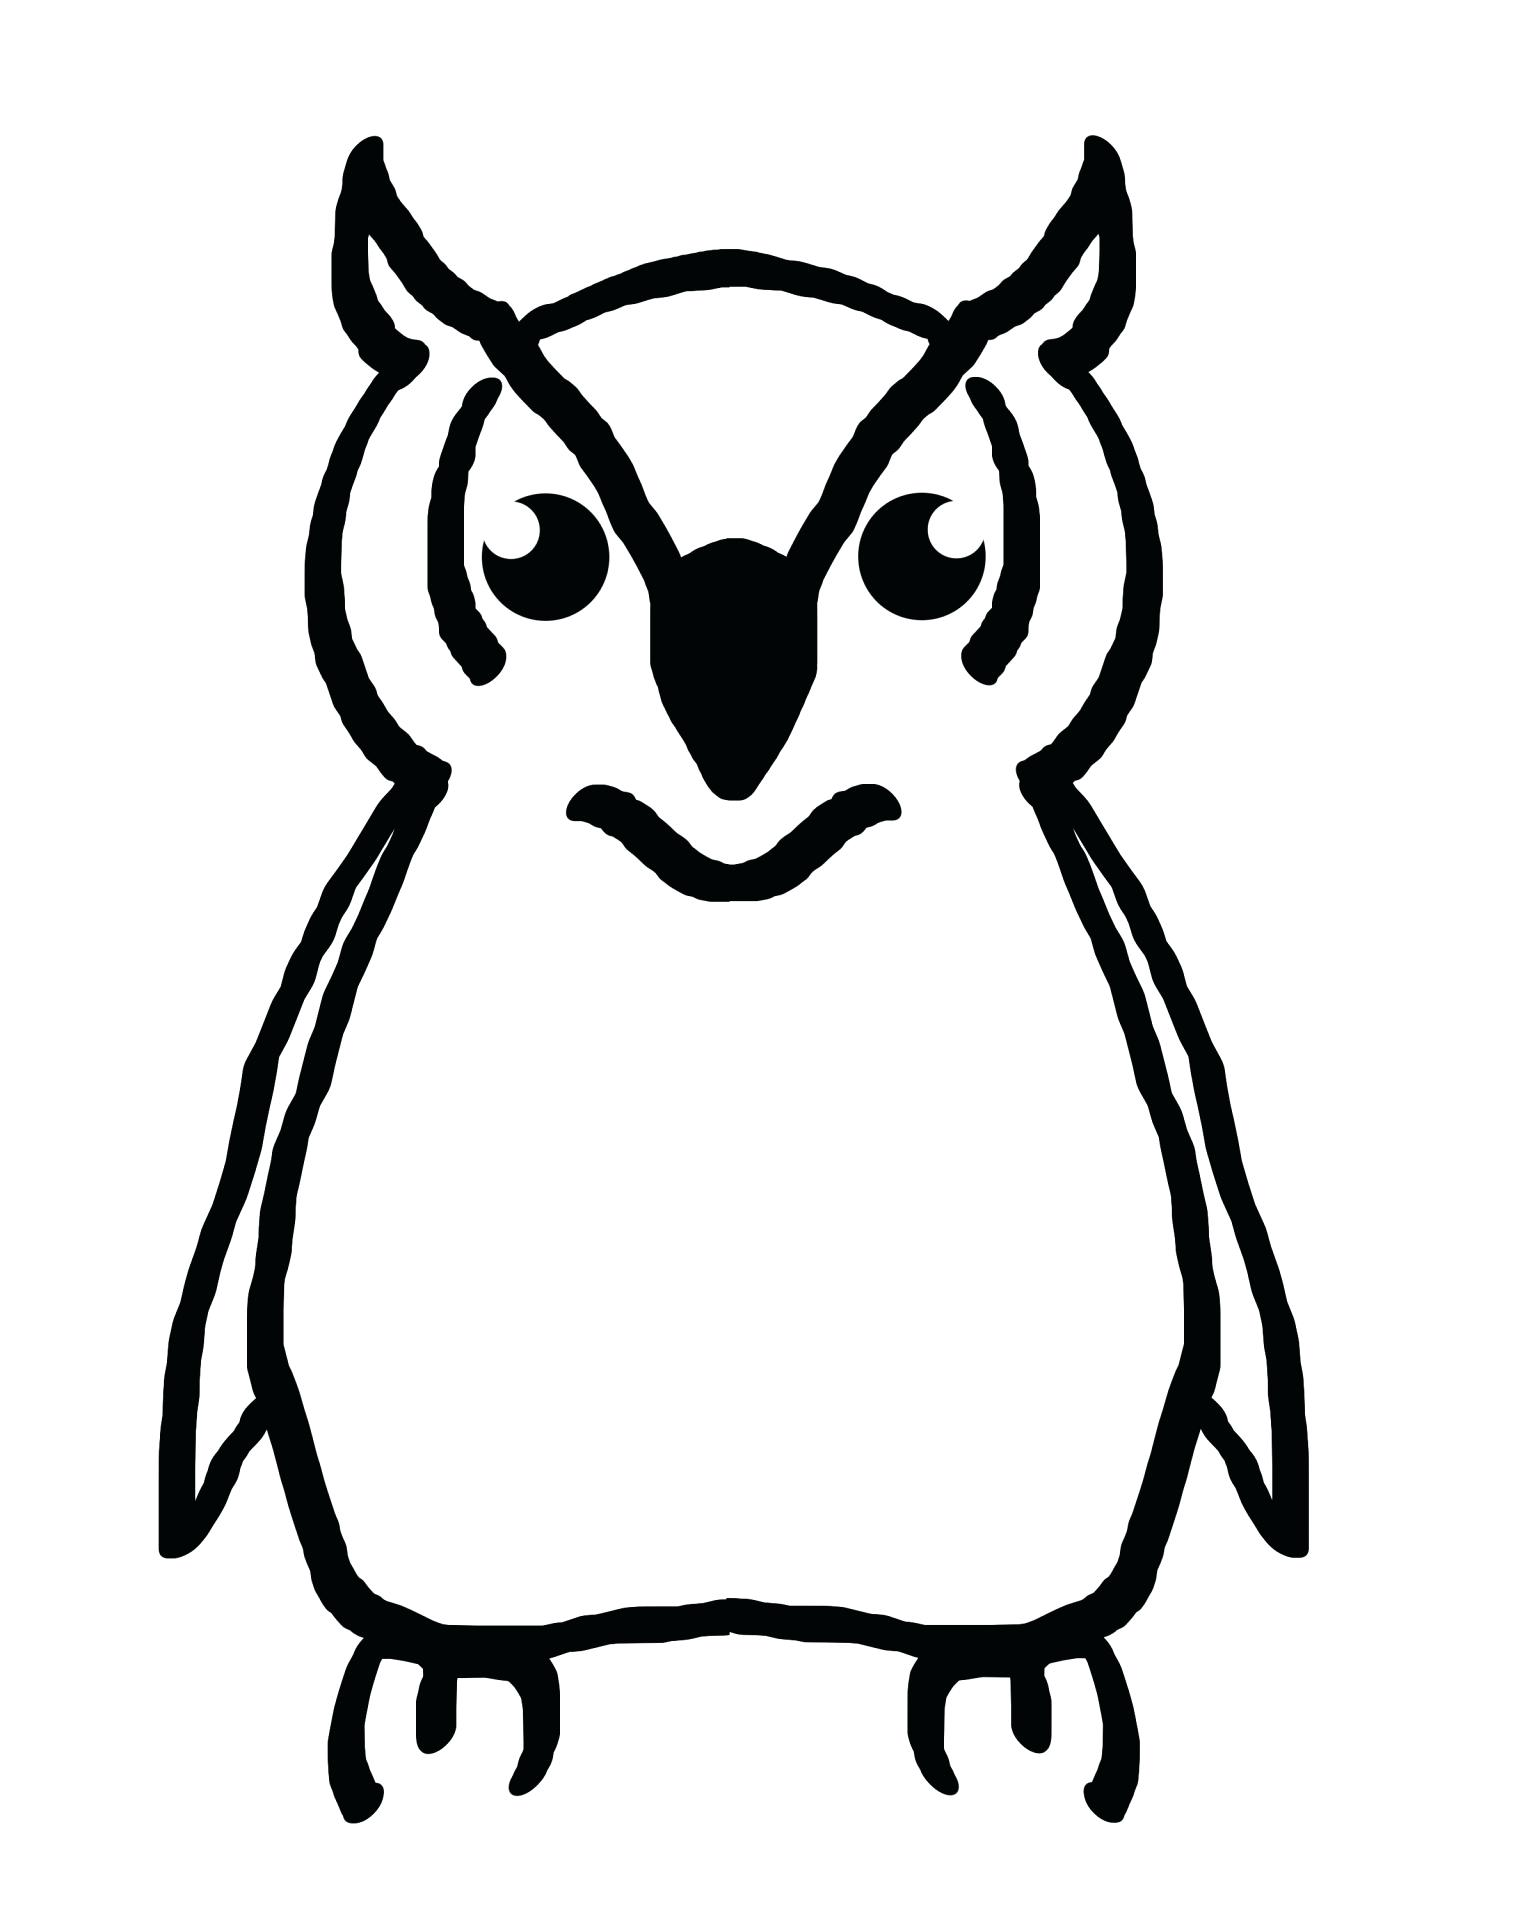 1536x1920 Owls And Tree Pattern Owl Outline Template Printable Purdue Owl